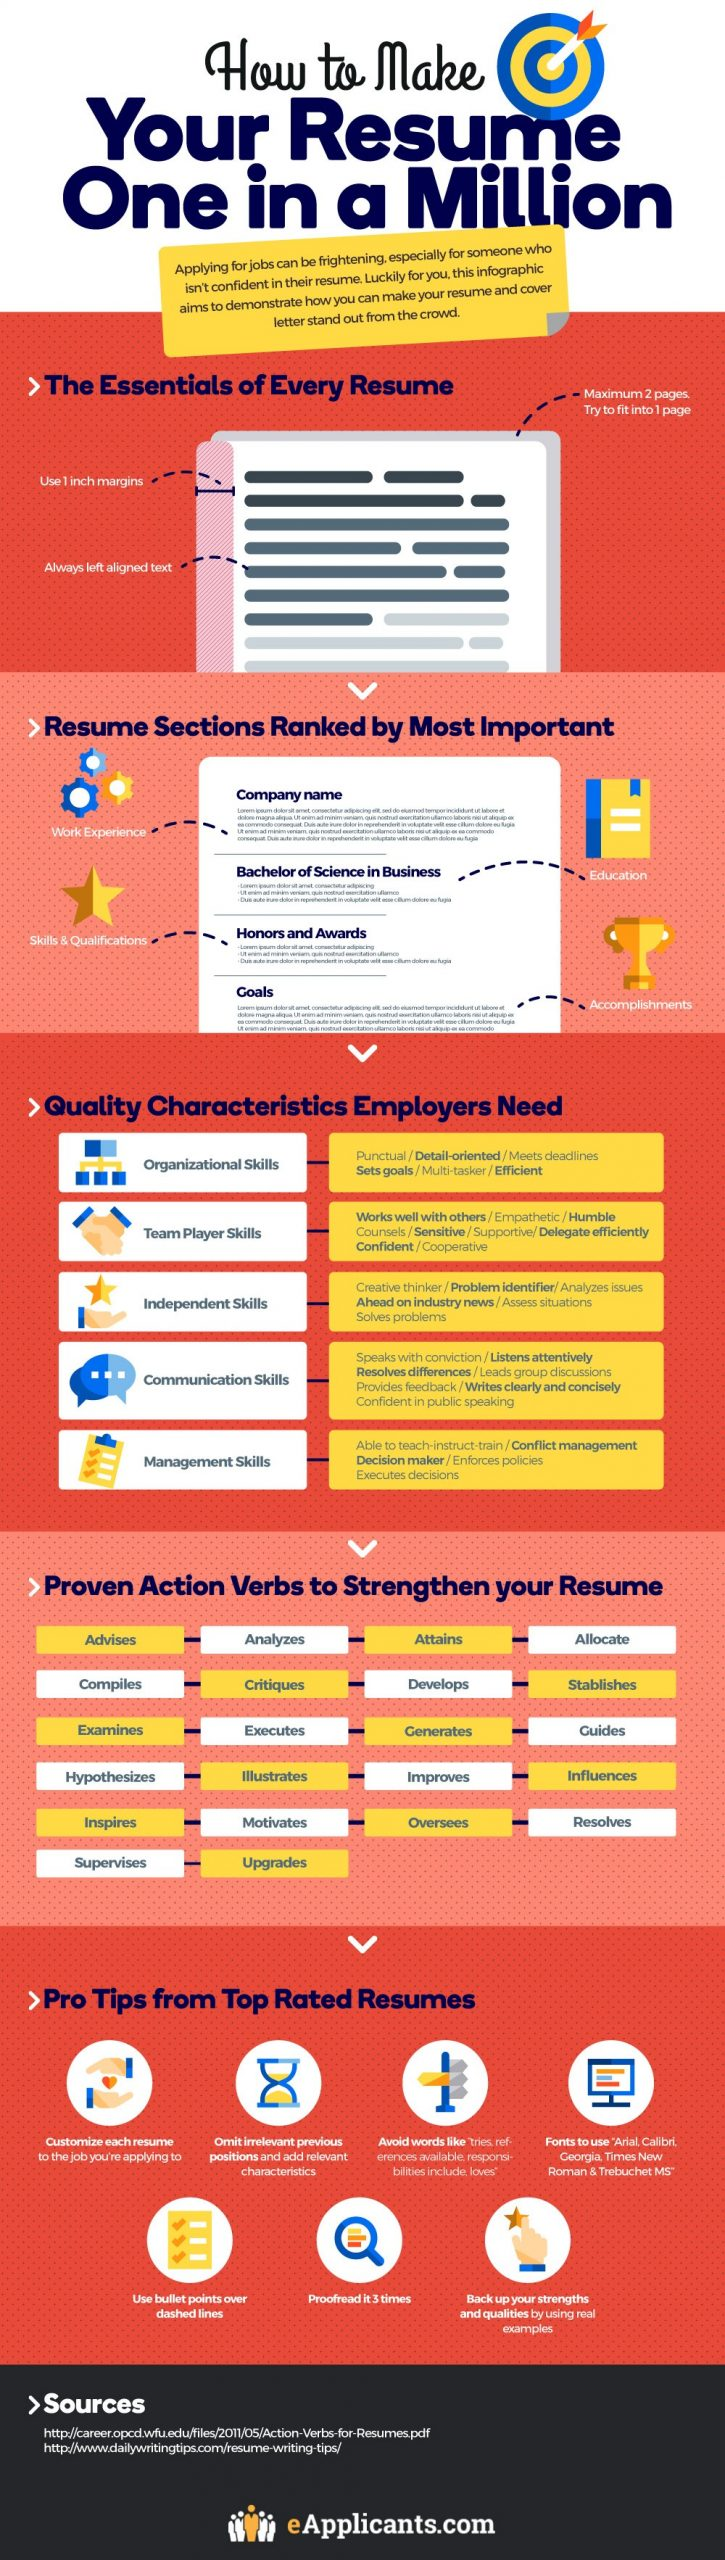 how to make your resume one in a million cheat sheet